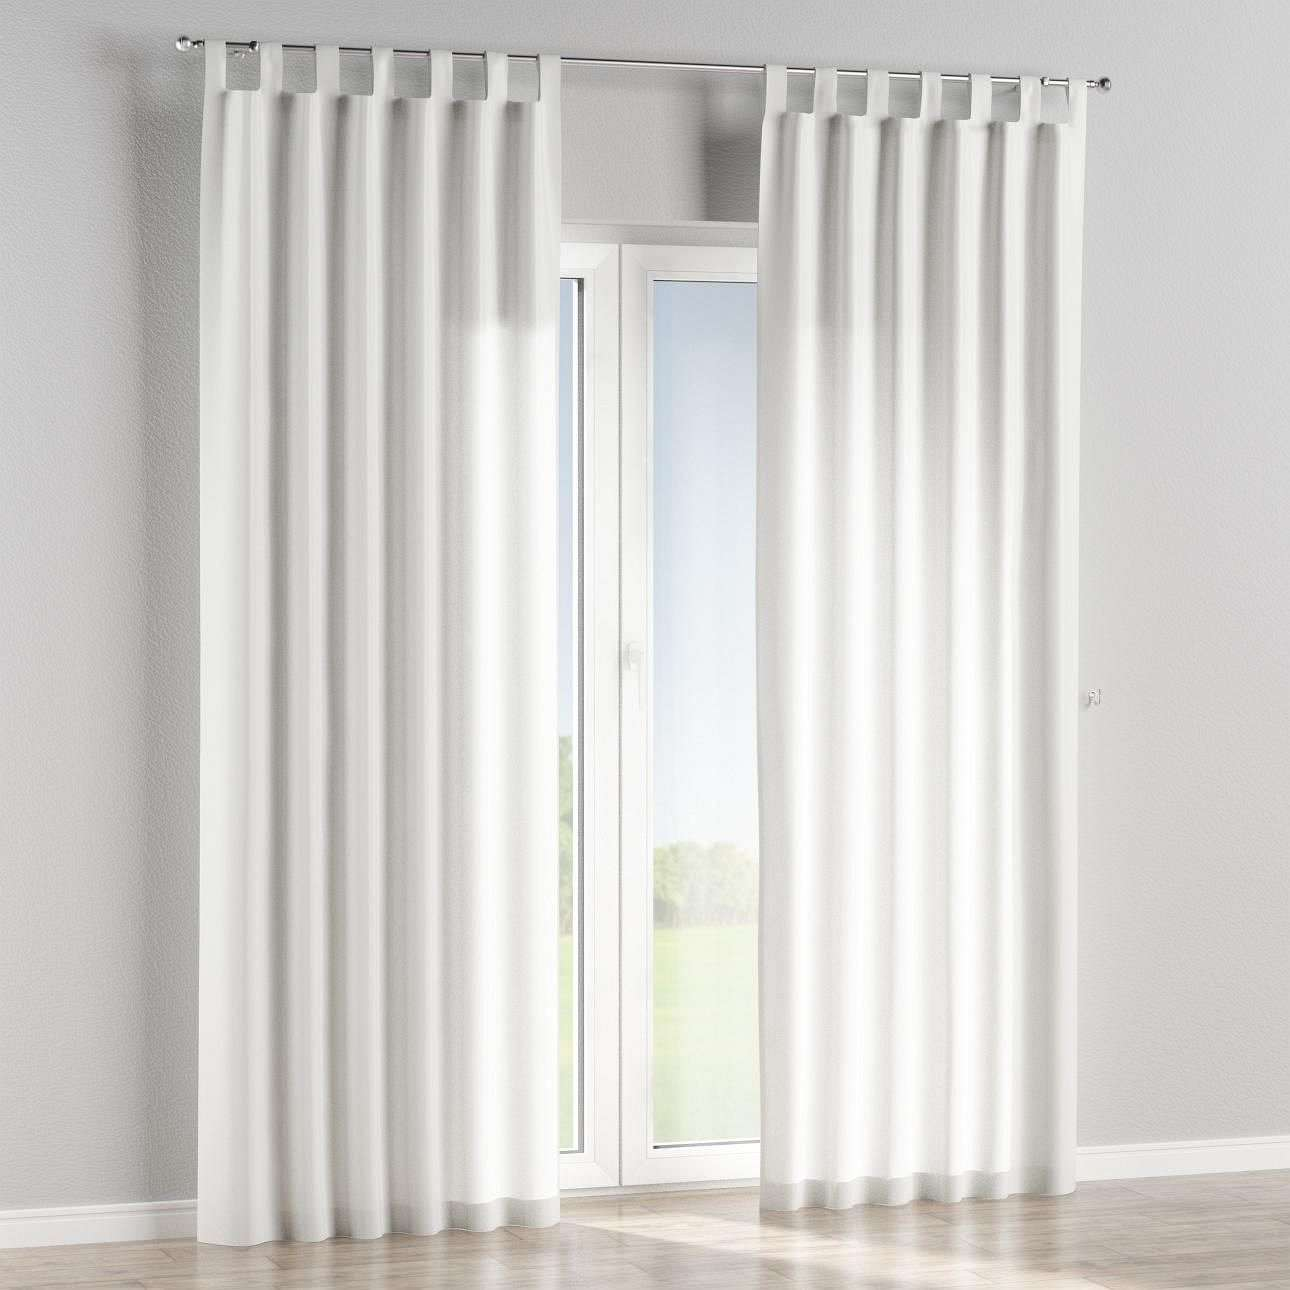 Tab top curtains in collection Jupiter, fabric: 127-04